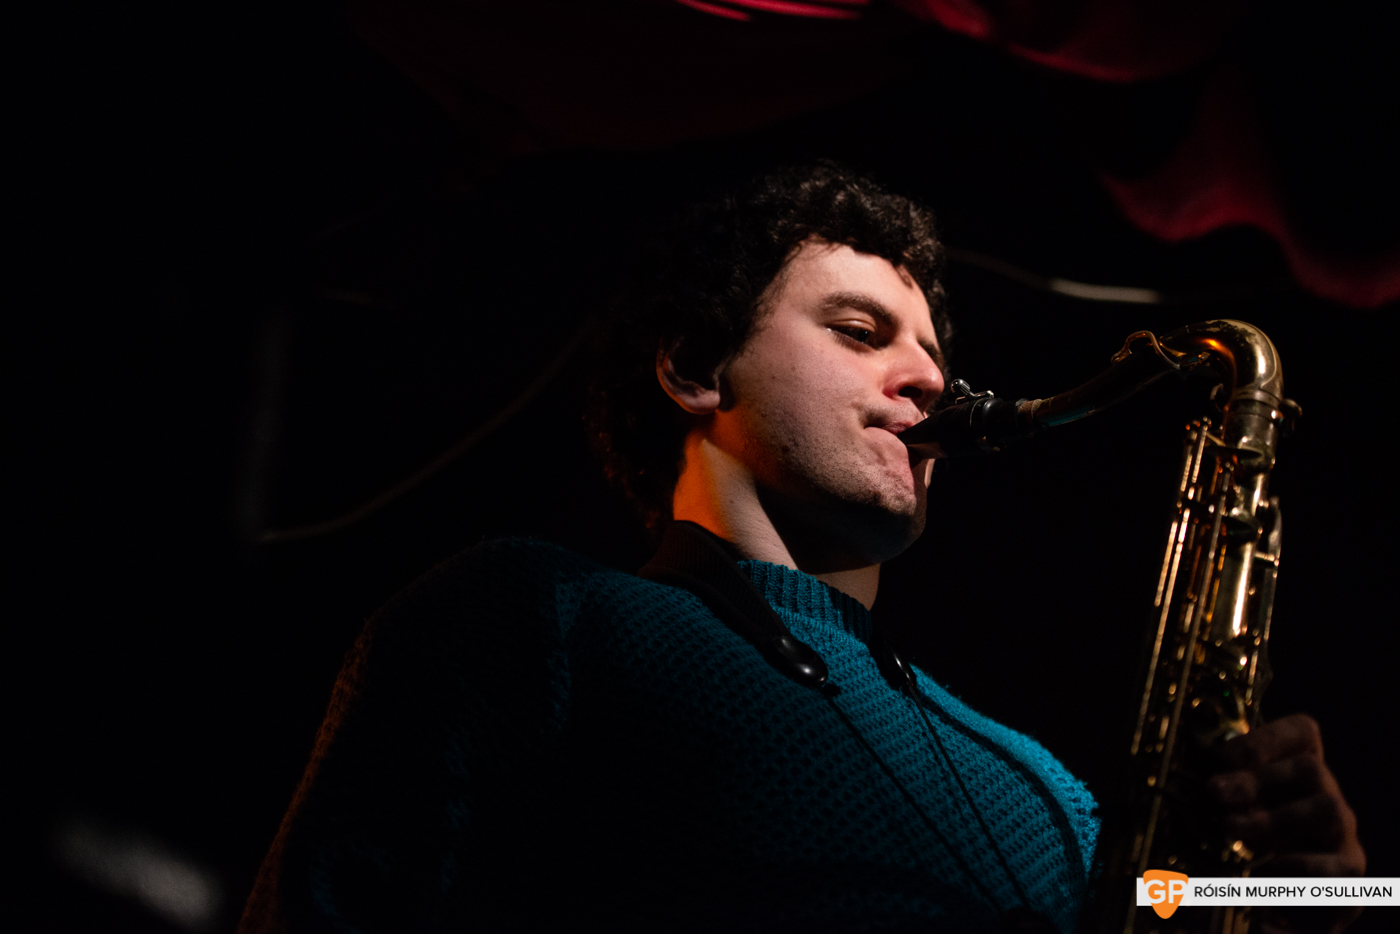 Kean Kavanagh in Whelans by Roisin Murphy O'Sullivan (11 of 28)